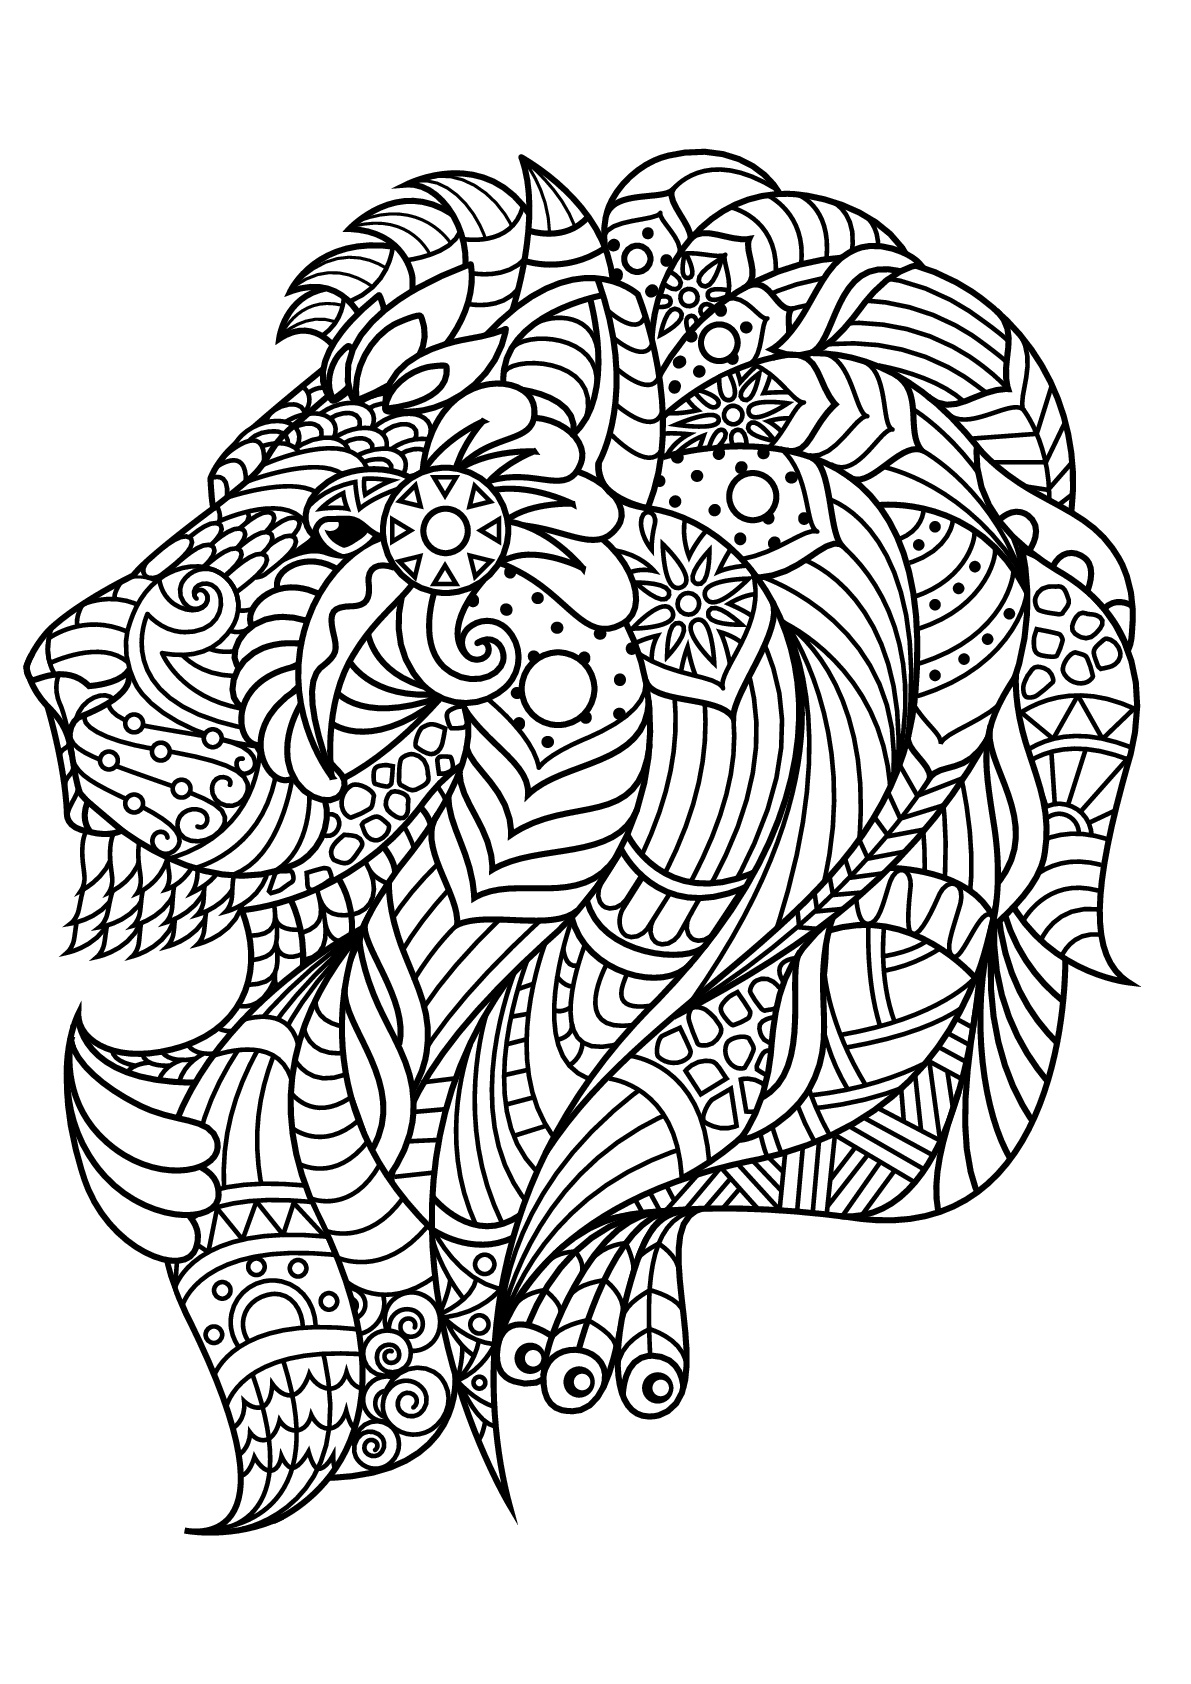 coloring pages for kids lion lion for kids lion kids coloring pages for lion kids coloring pages